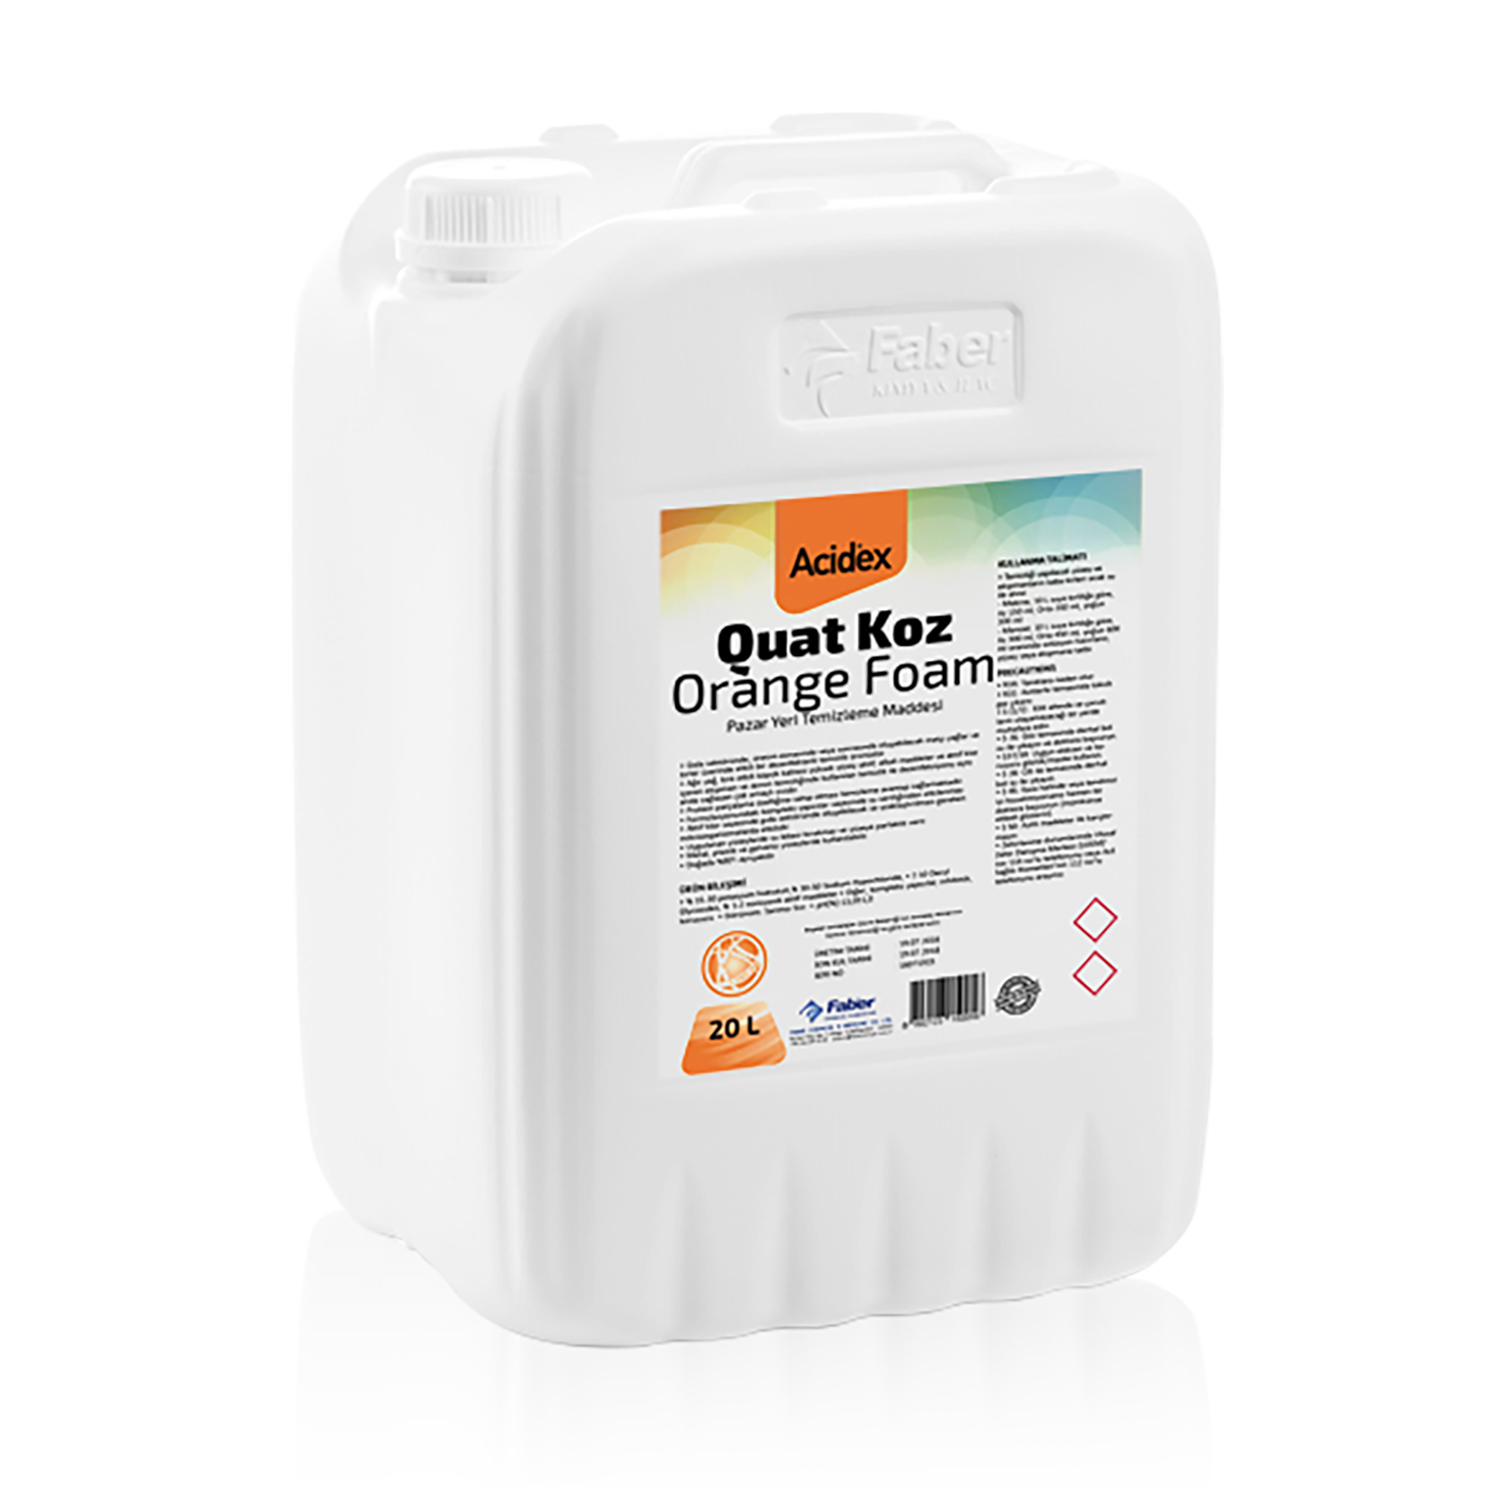 Acidex Quat Koz Orange Foam